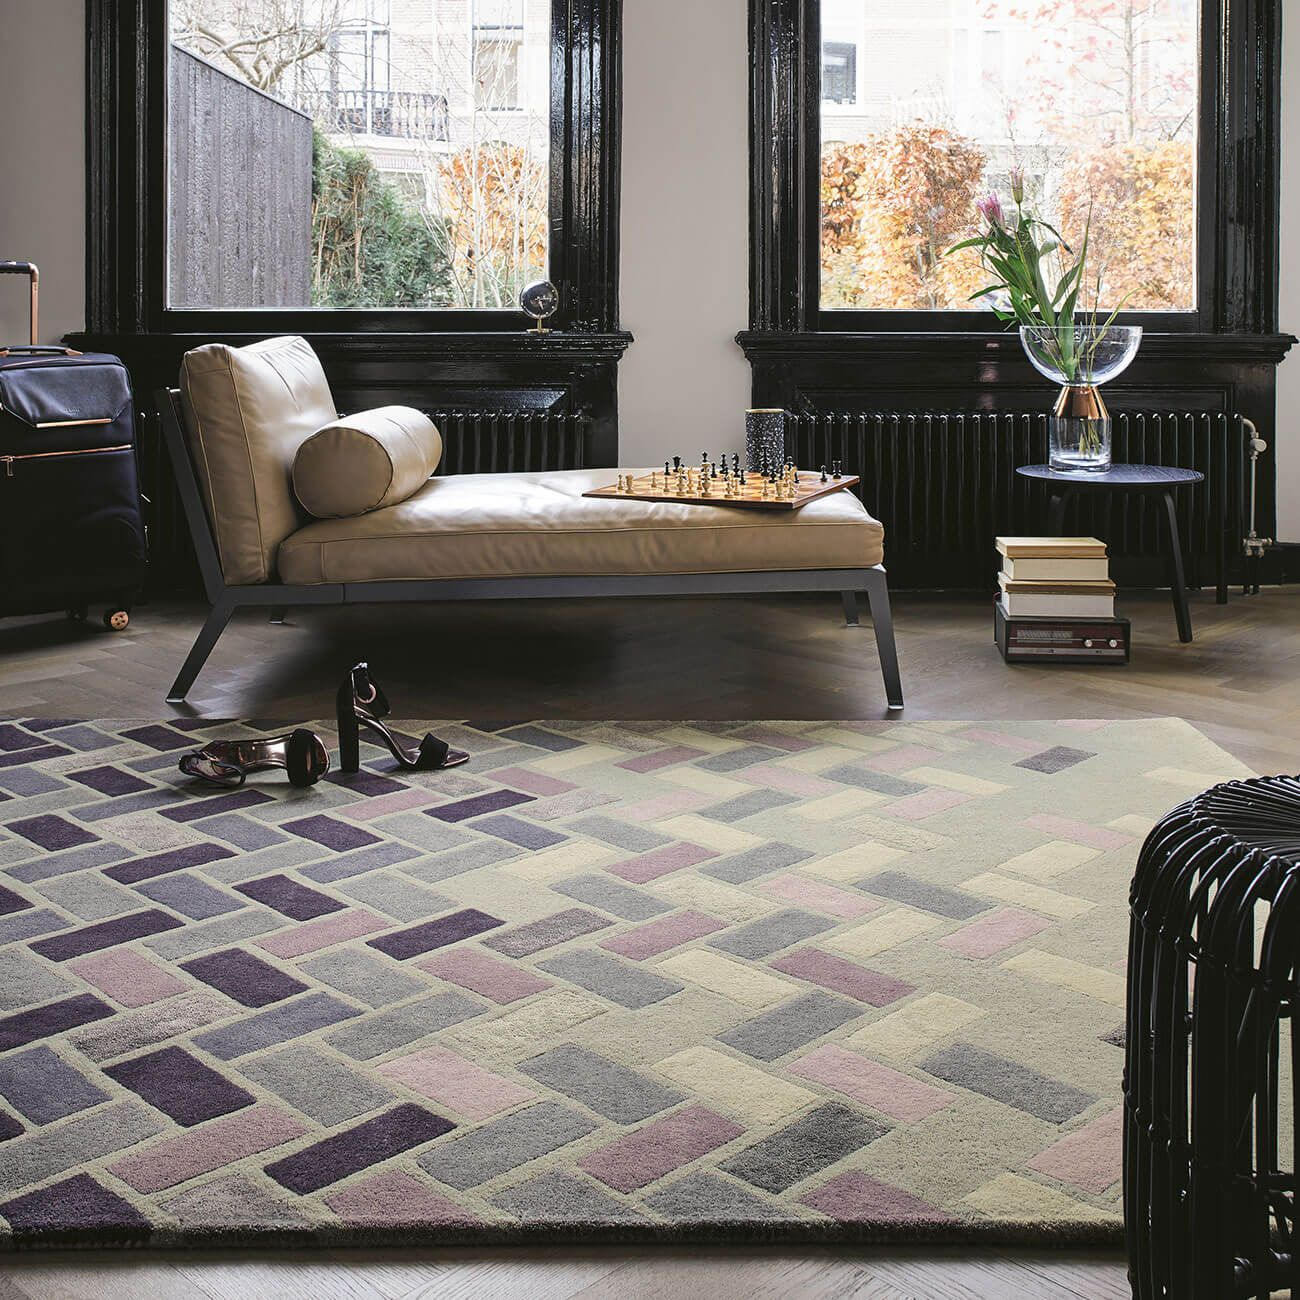 Buy Now Agave Ash 57104 Grey Hand Tufted Wool Rug Therugshopuk